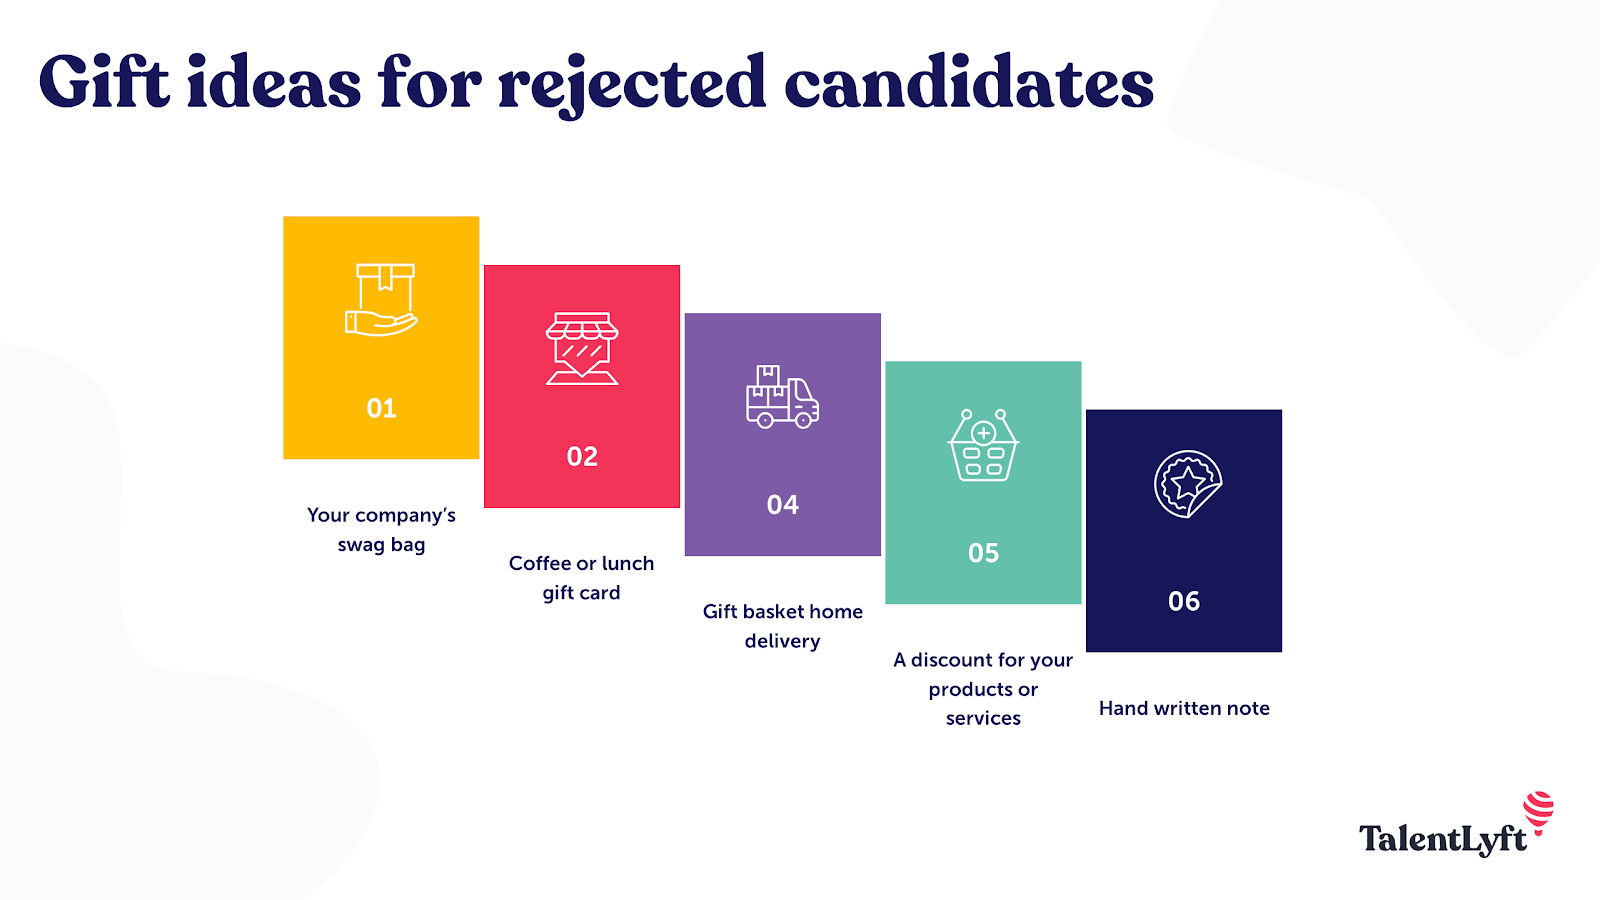 Gift ideas for rejected candidates